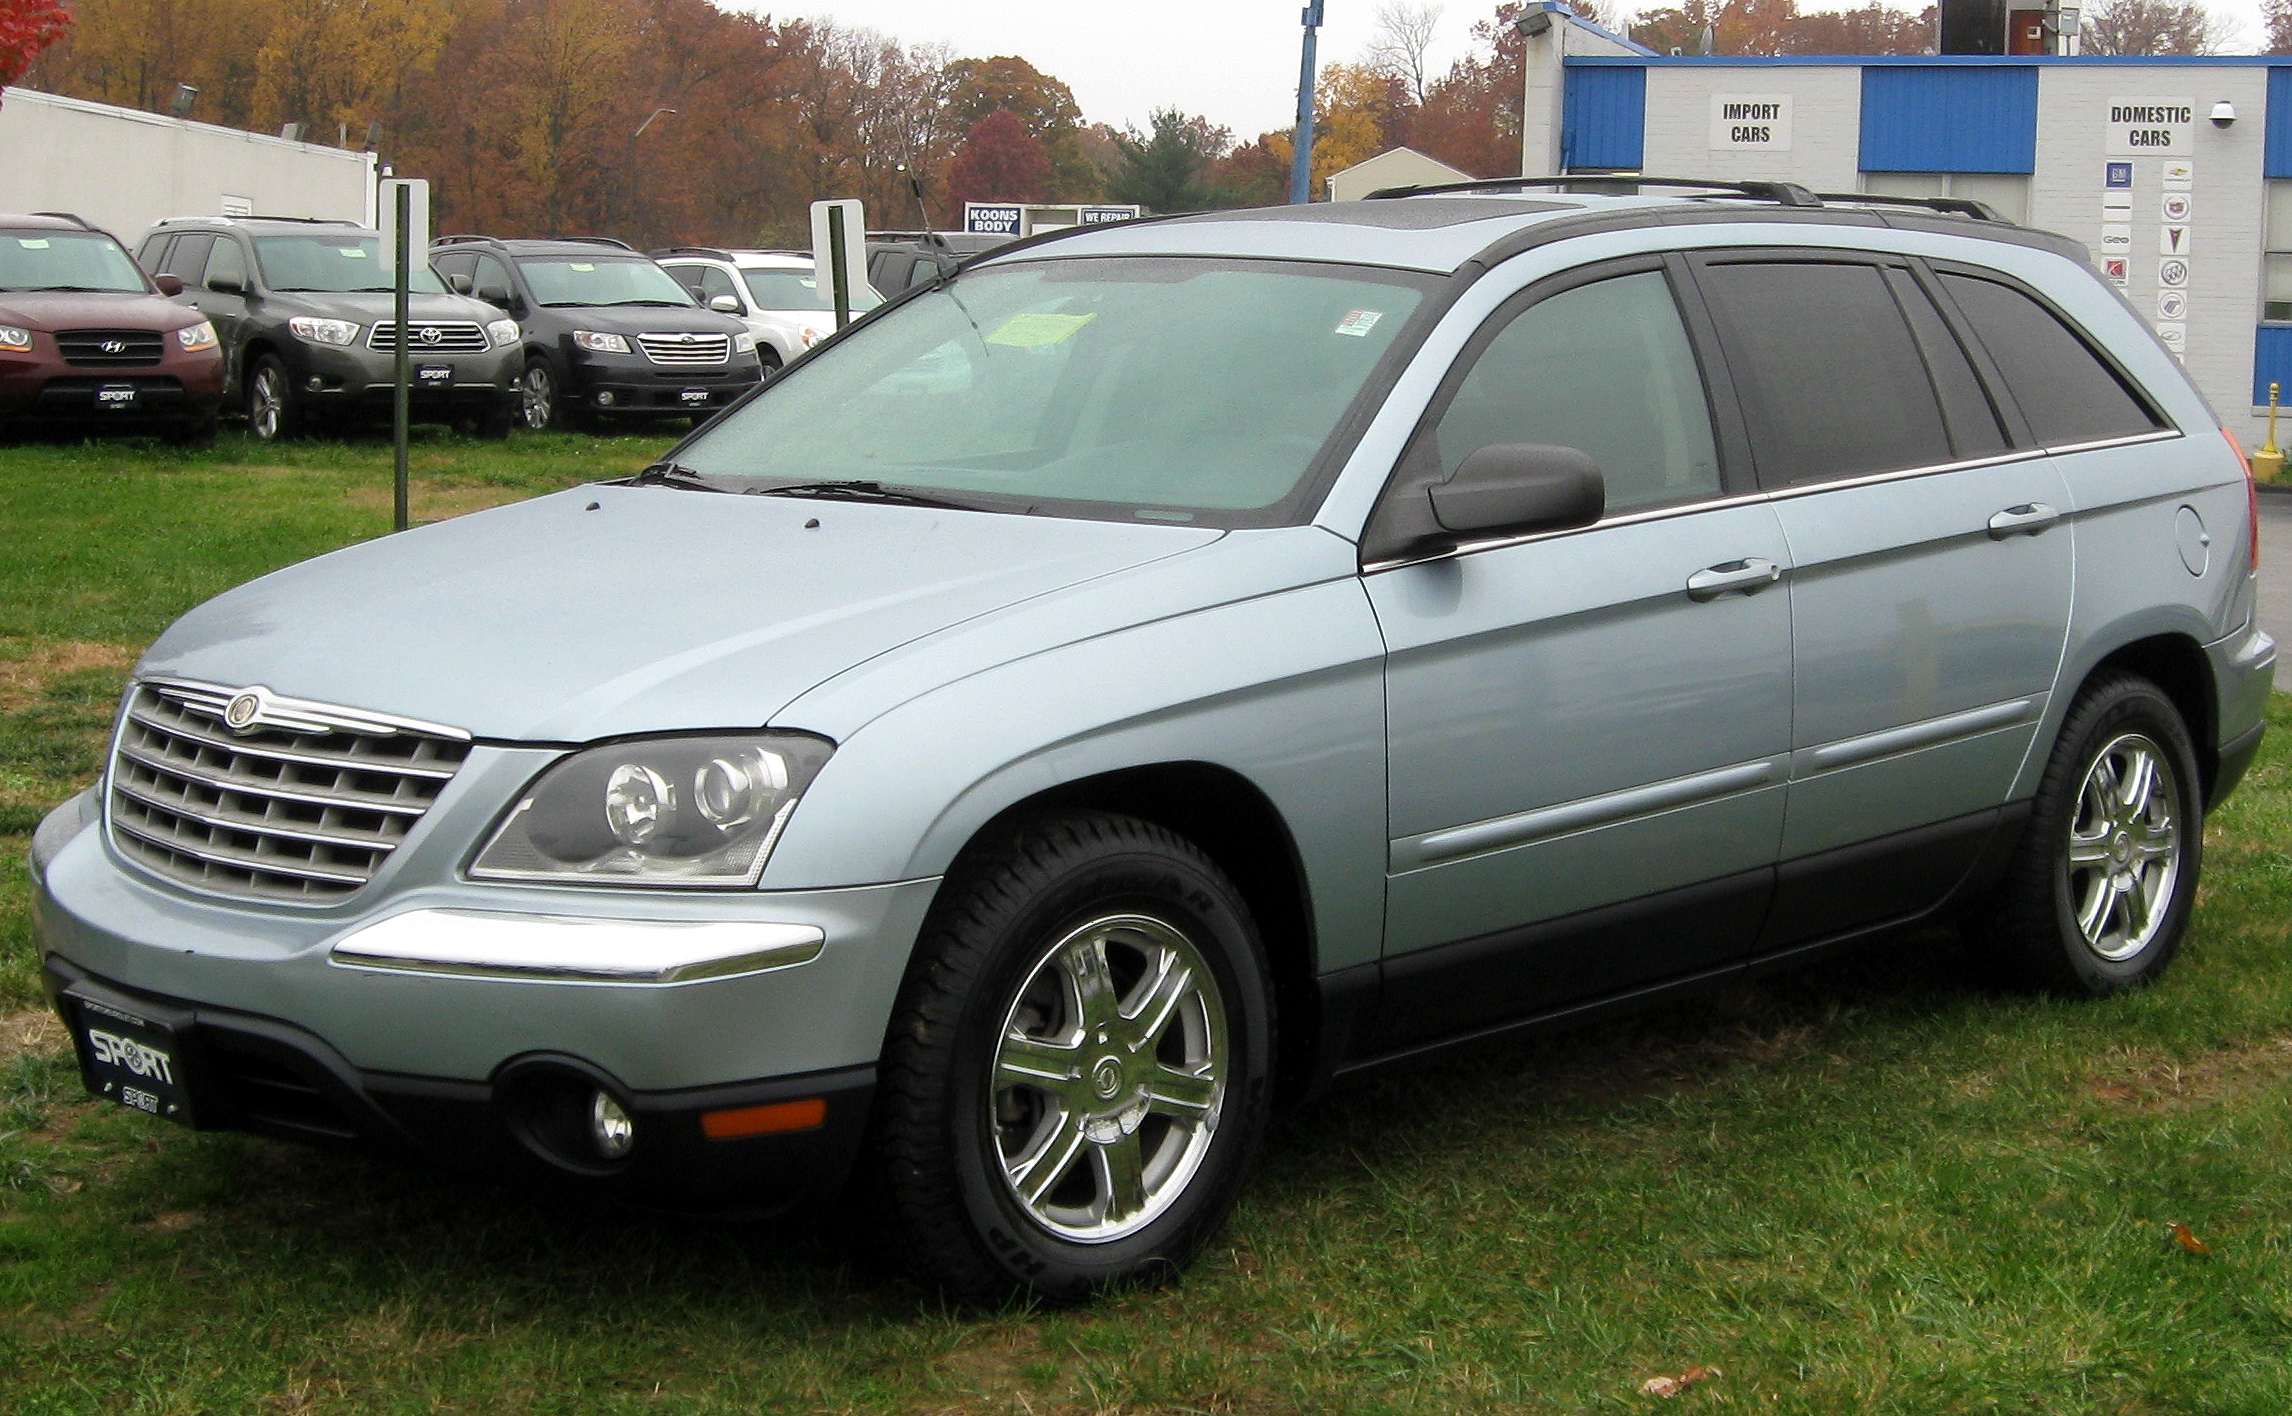 2006 Chrysler Pacifica Image 17